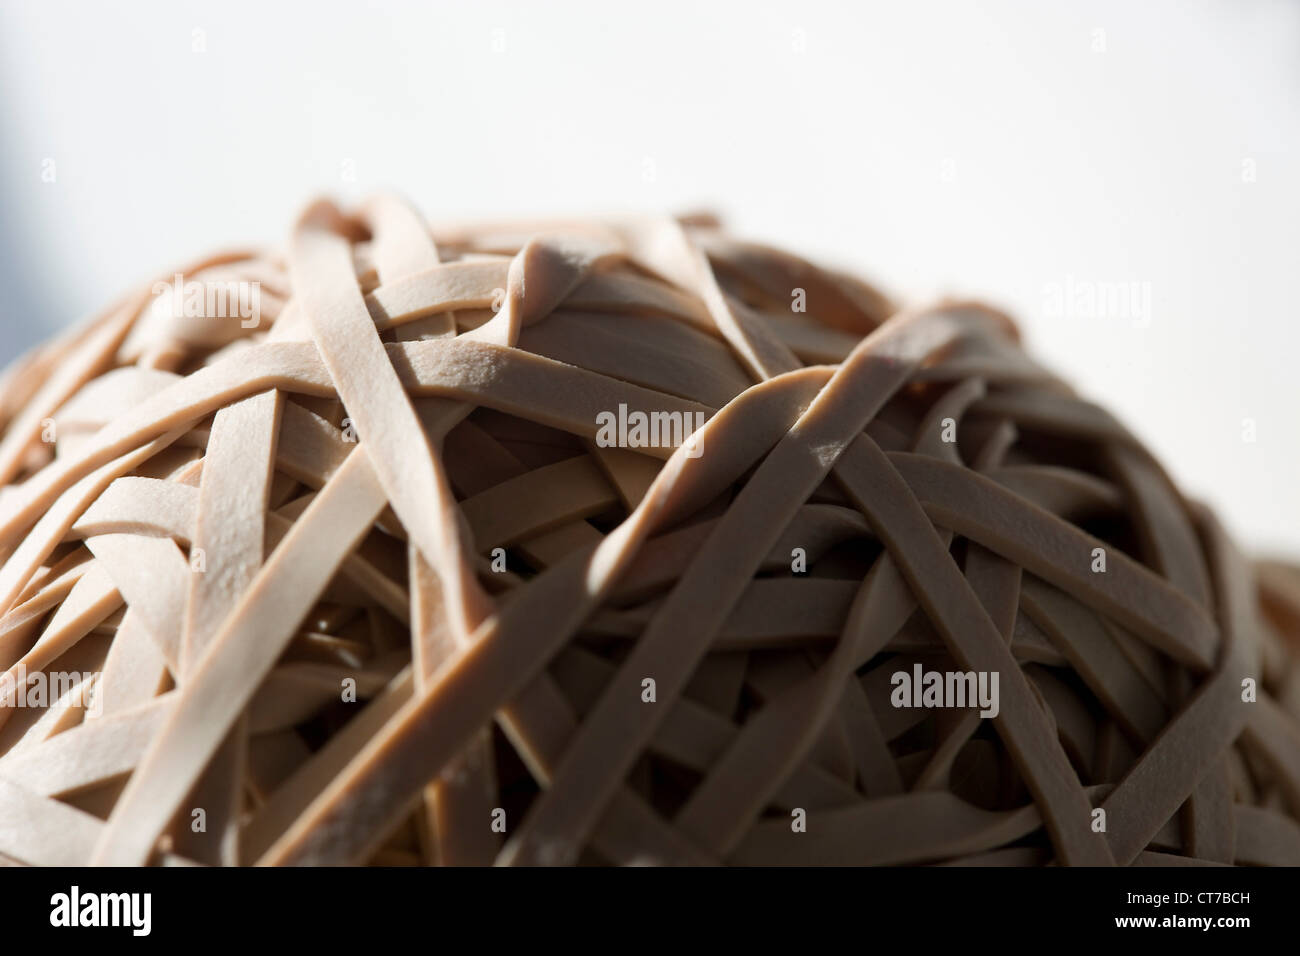 Ball of rubber bands - Stock Image